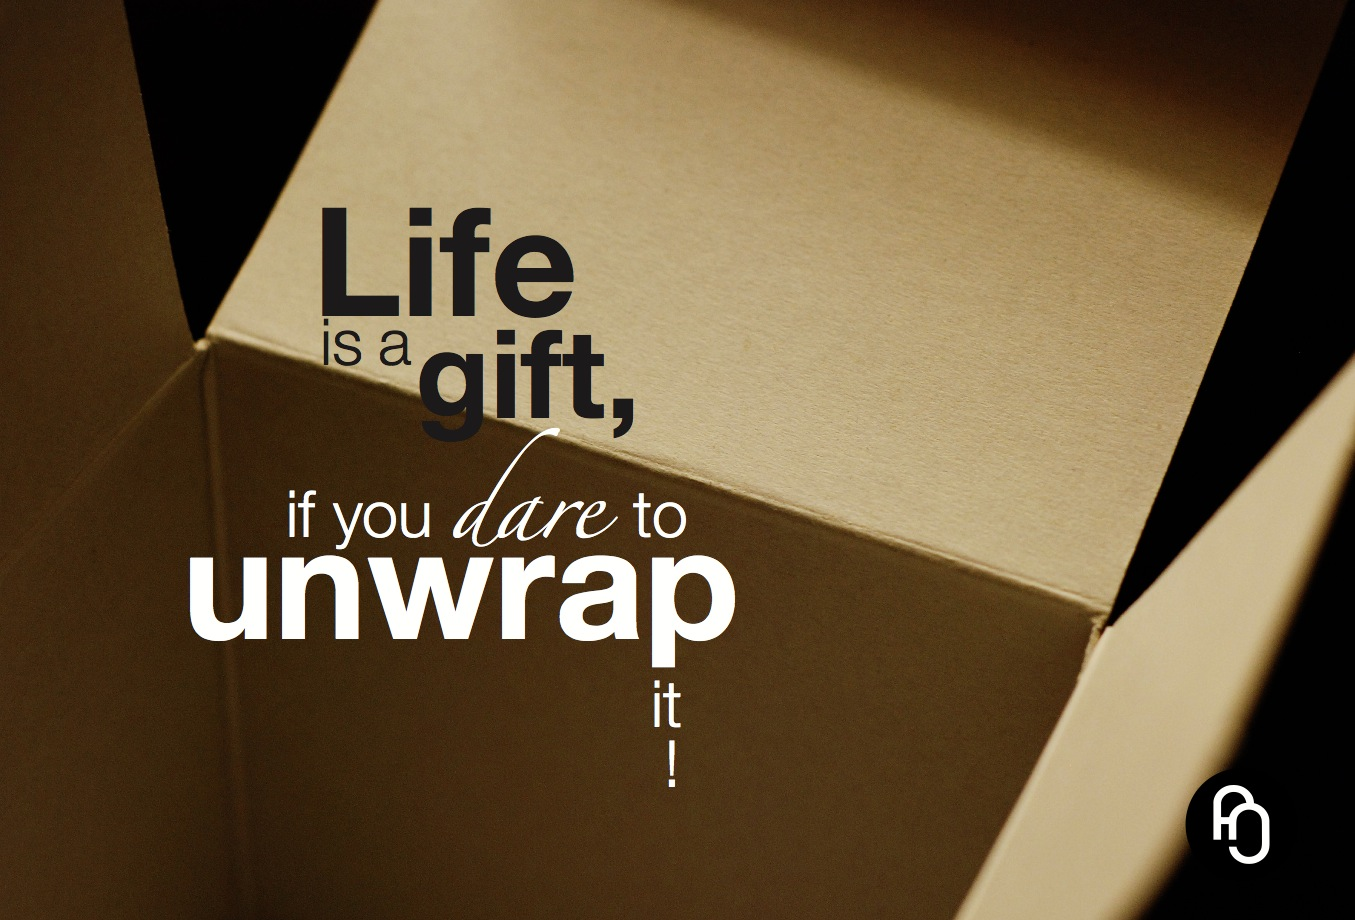 focusNjoy #50: Life is a gift, if you dare to unwrap it